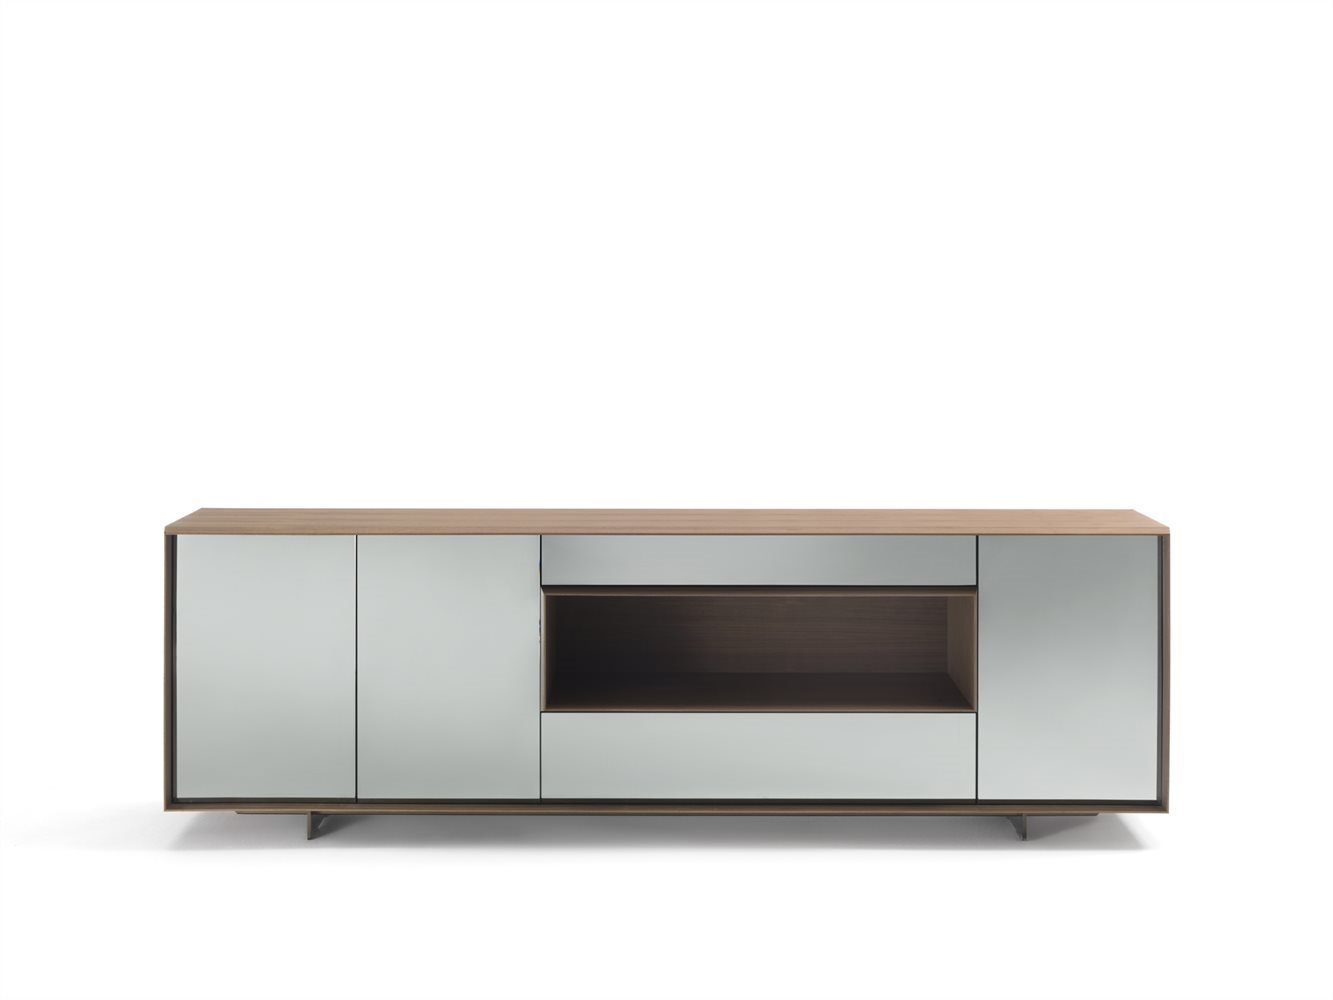 Sonja Cabinet from Porada, designed by Gino Carollo